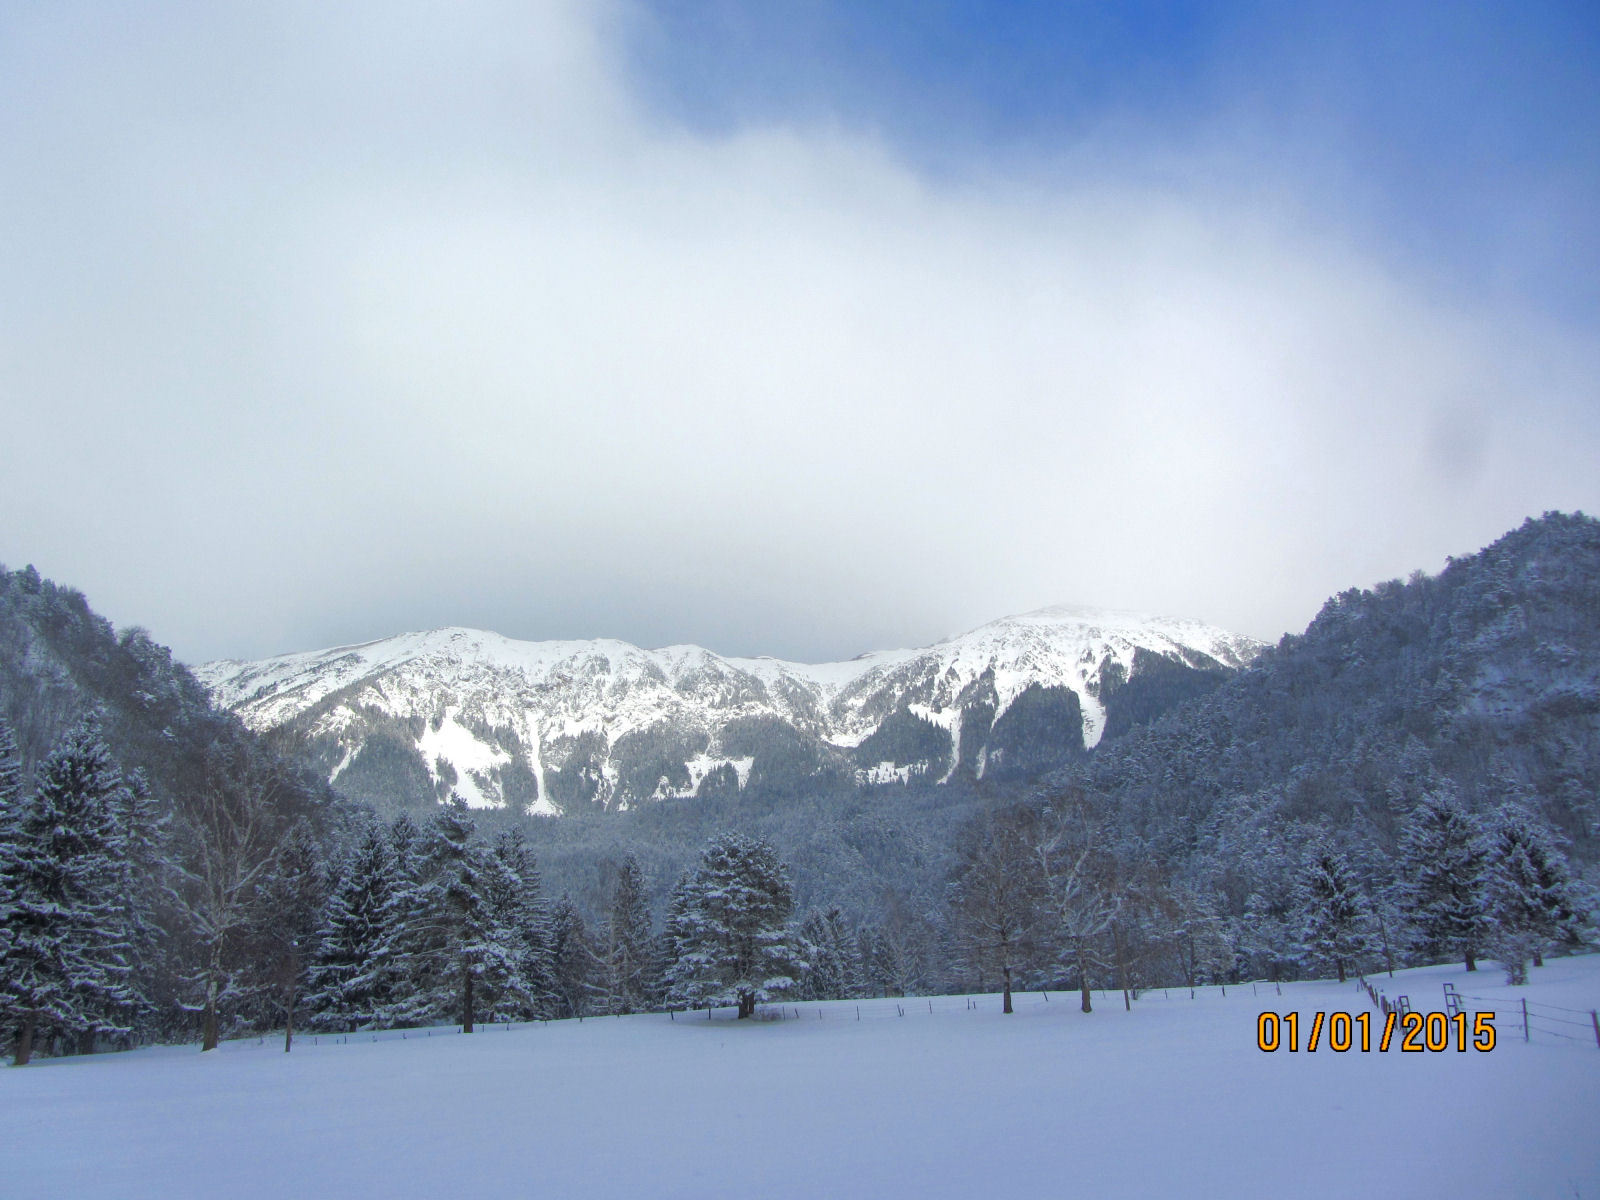 Karawanks in winter, january 22015 Slovenia